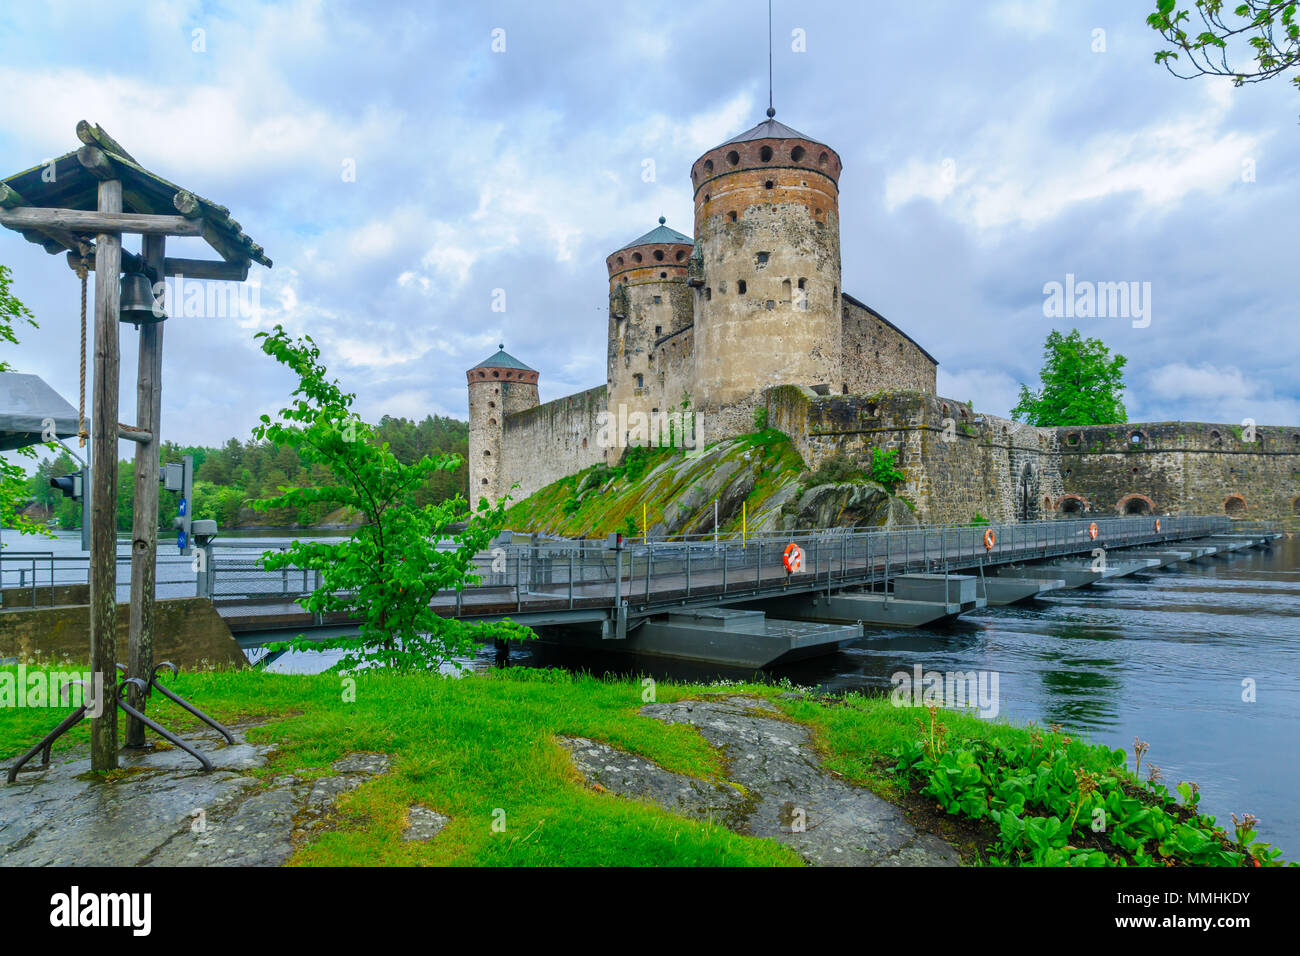 View of the Olavinlinna castle, in Savonlinna, Finland. It is a 15th-century three-tower castle Stock Photo